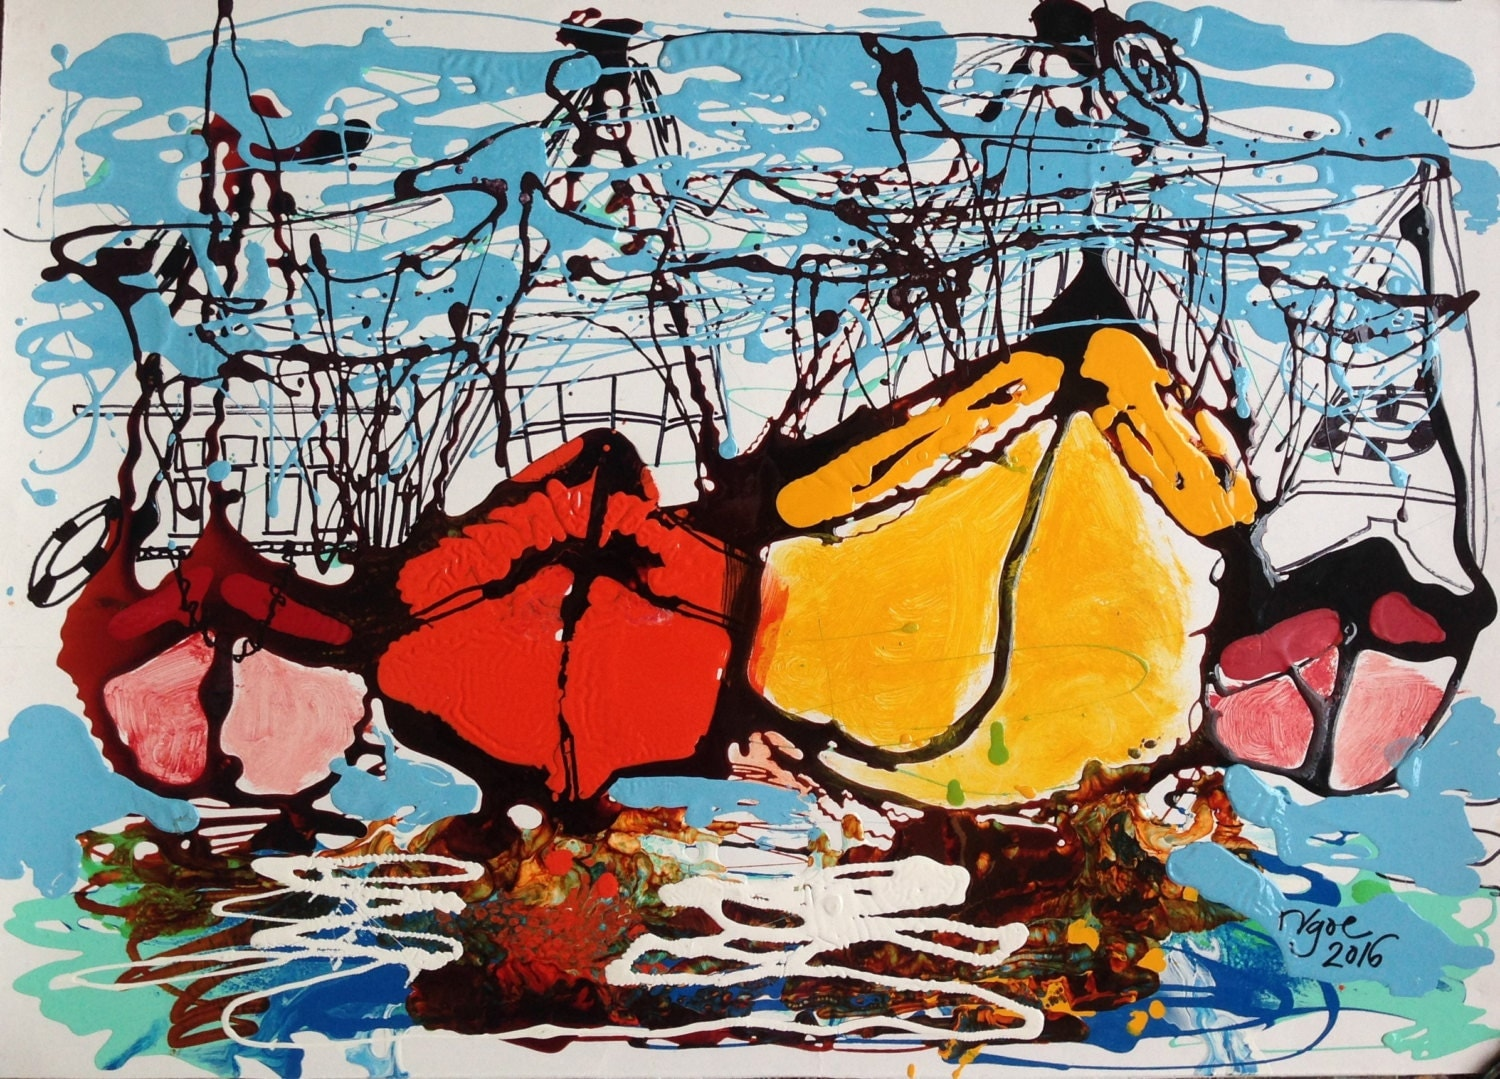 """MEKONG DELTA BOATS 21.7x15.7"""" oil on paper, lines, original painting by Nguyen Ly Phuong Ngoc"""